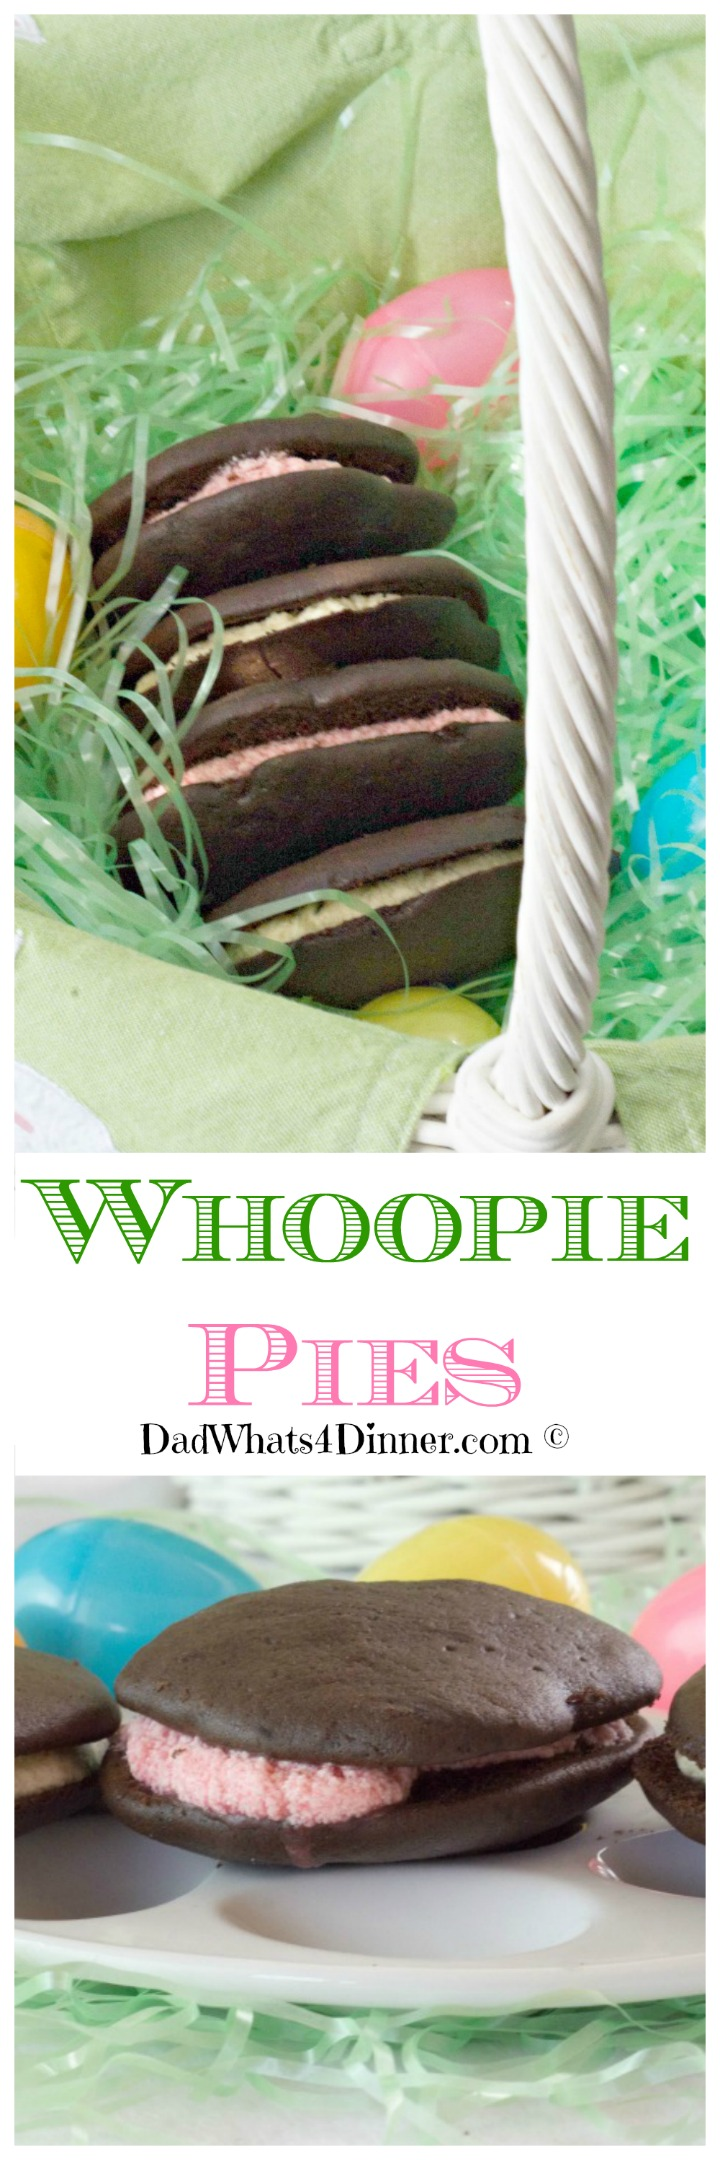 If you are looking for an alternative to store-bought Easter candy, these Whoopie Pies would be the perfect treat from the